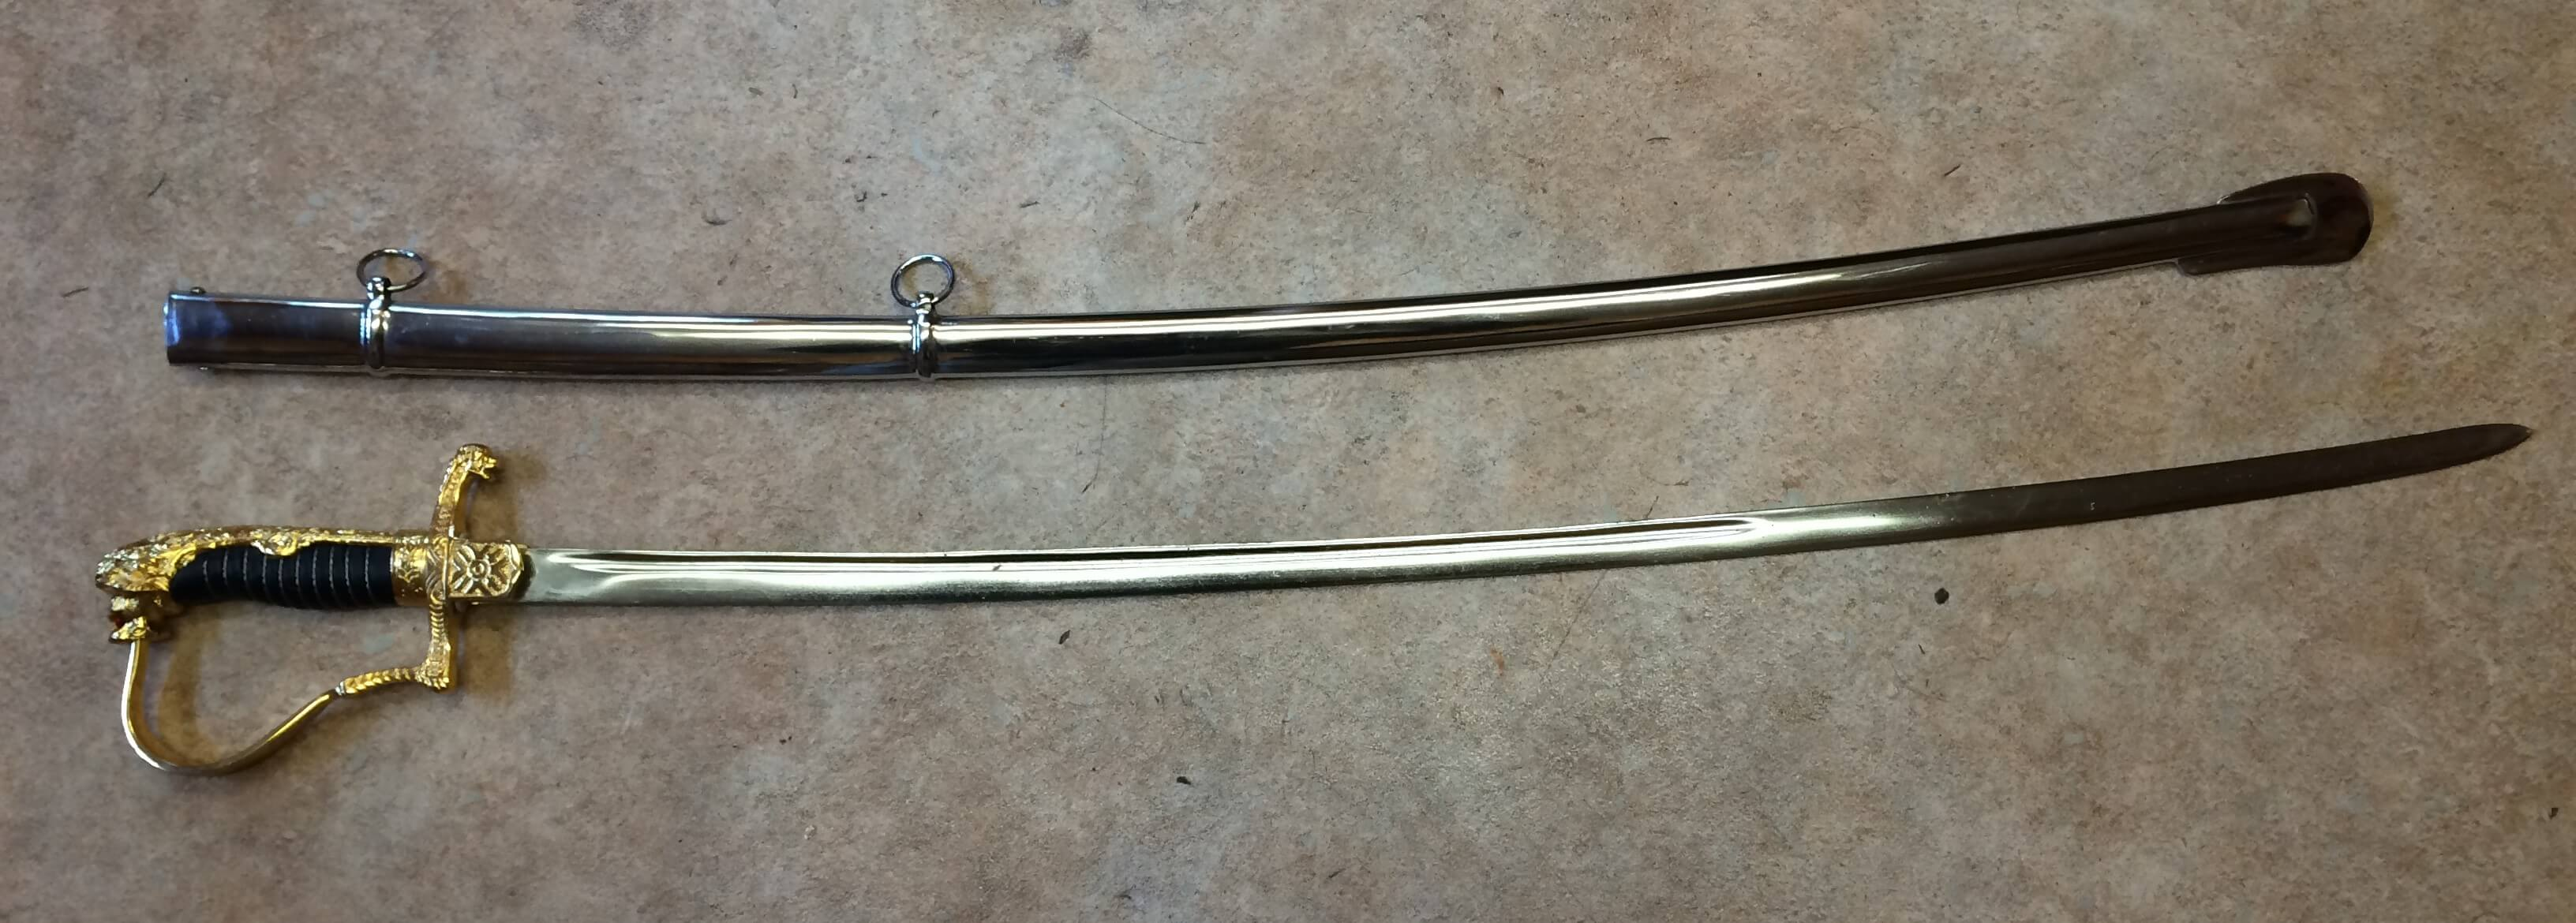 1796 Lion-headed Prussian Officer's Sabre